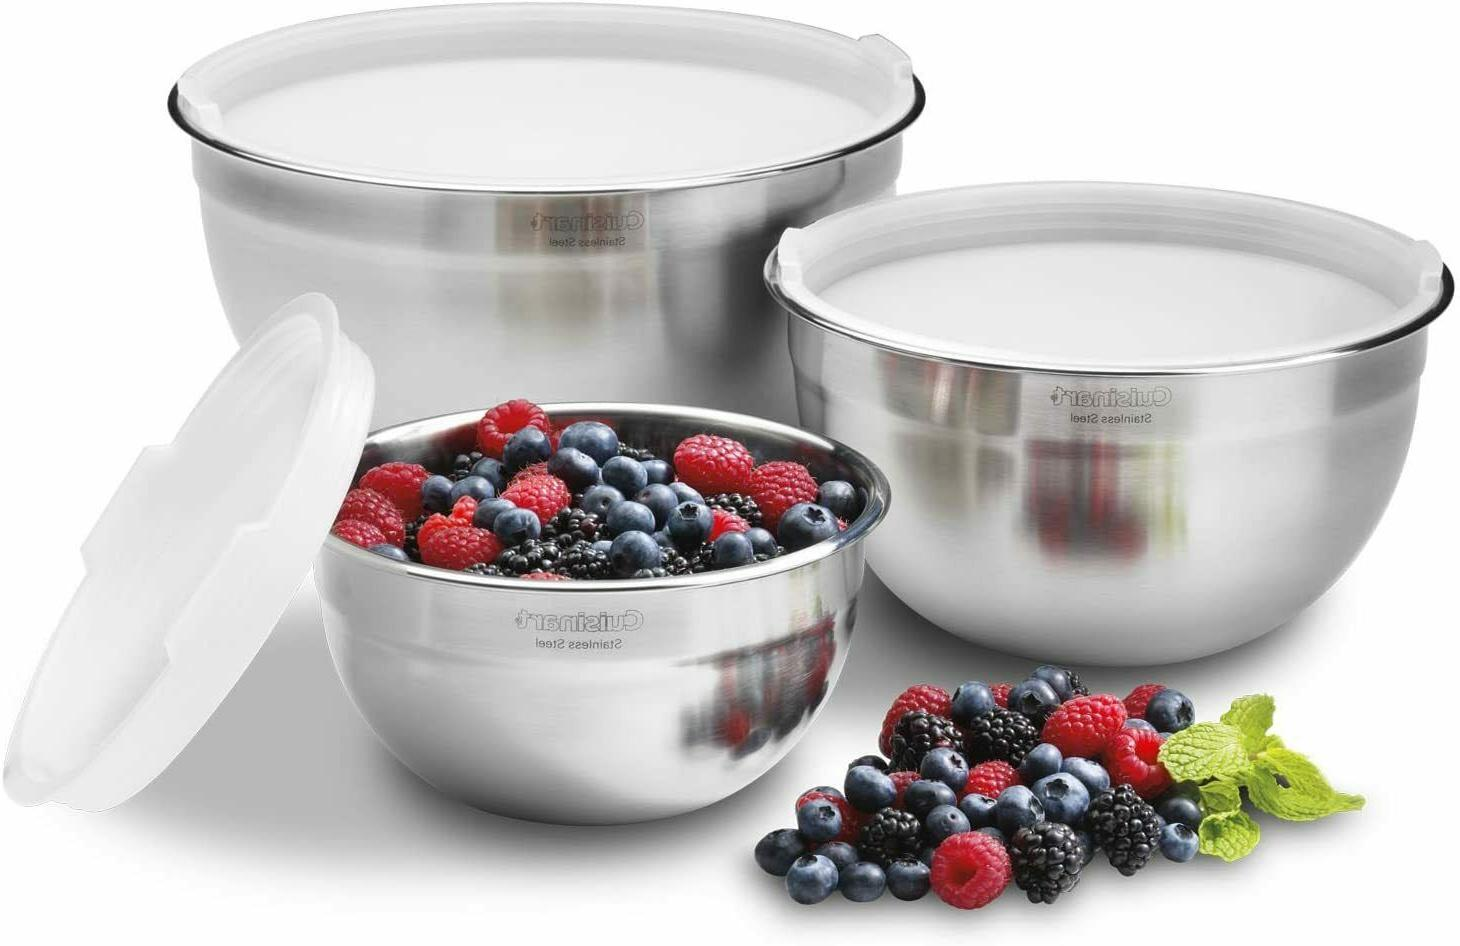 Cuisinart CTG-00-SMB Stainless Steel Mixing Bowls with Lids,